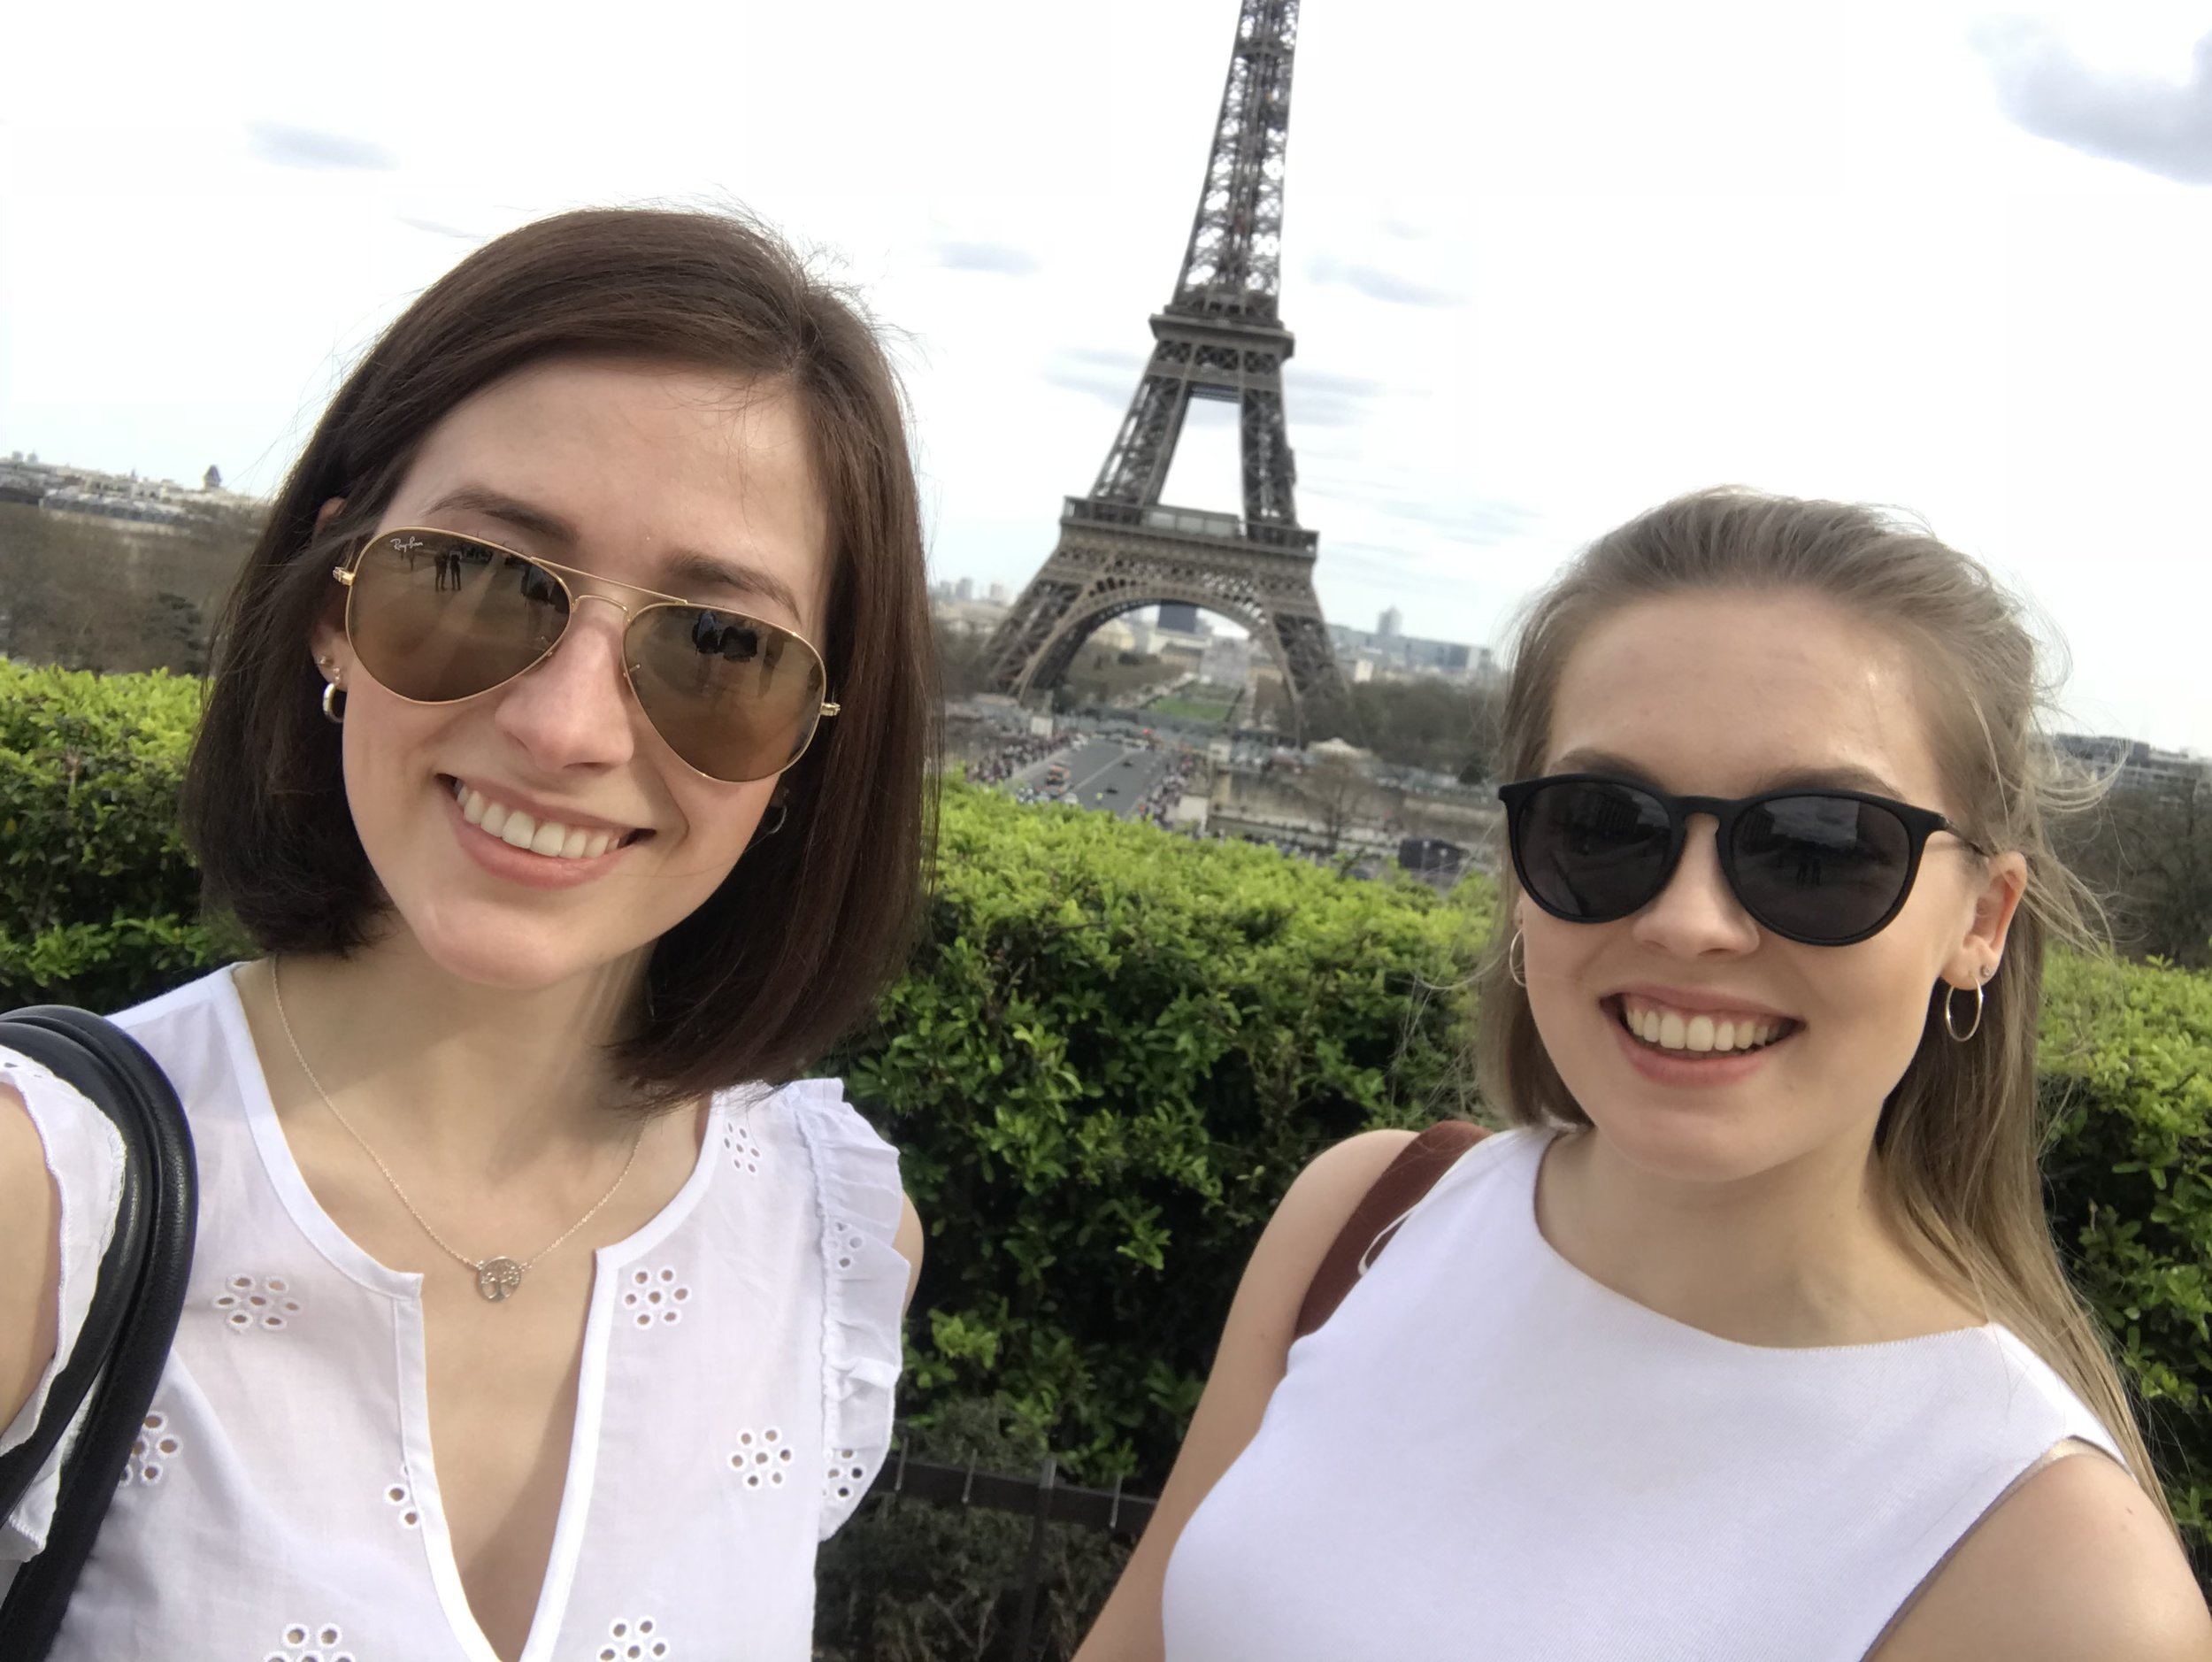 Flora (right, pictured with her friend) says using her Monzo card helps her save for holidays, and she used it in Paris with no problems too.